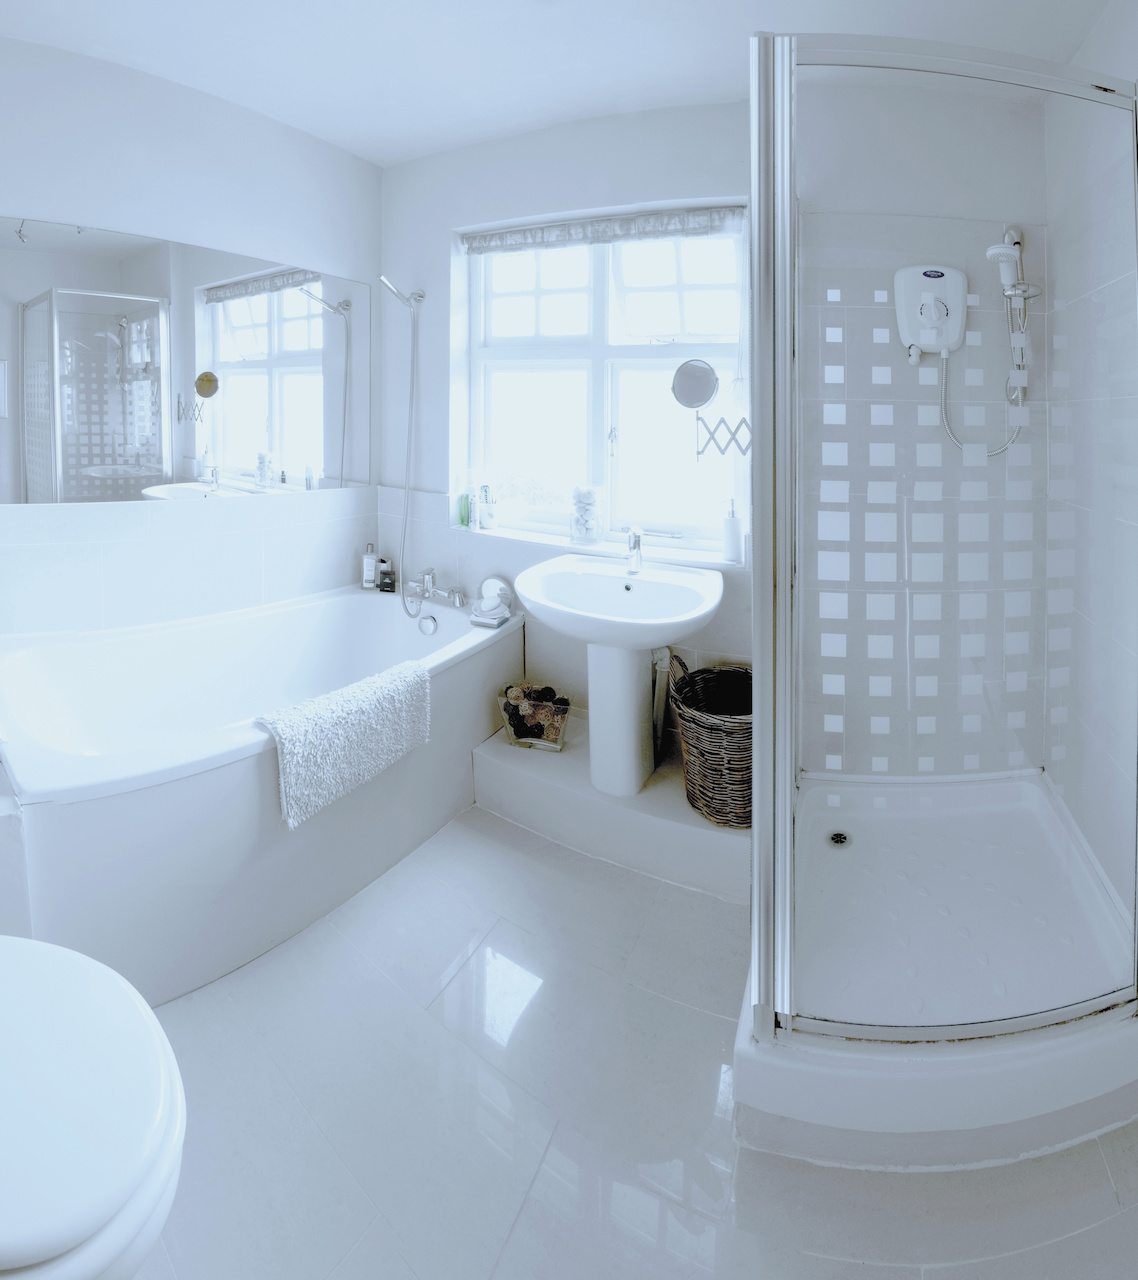 How to Tell When You Need New Bathroom Plumbing | Armbrust Plumbing Inc